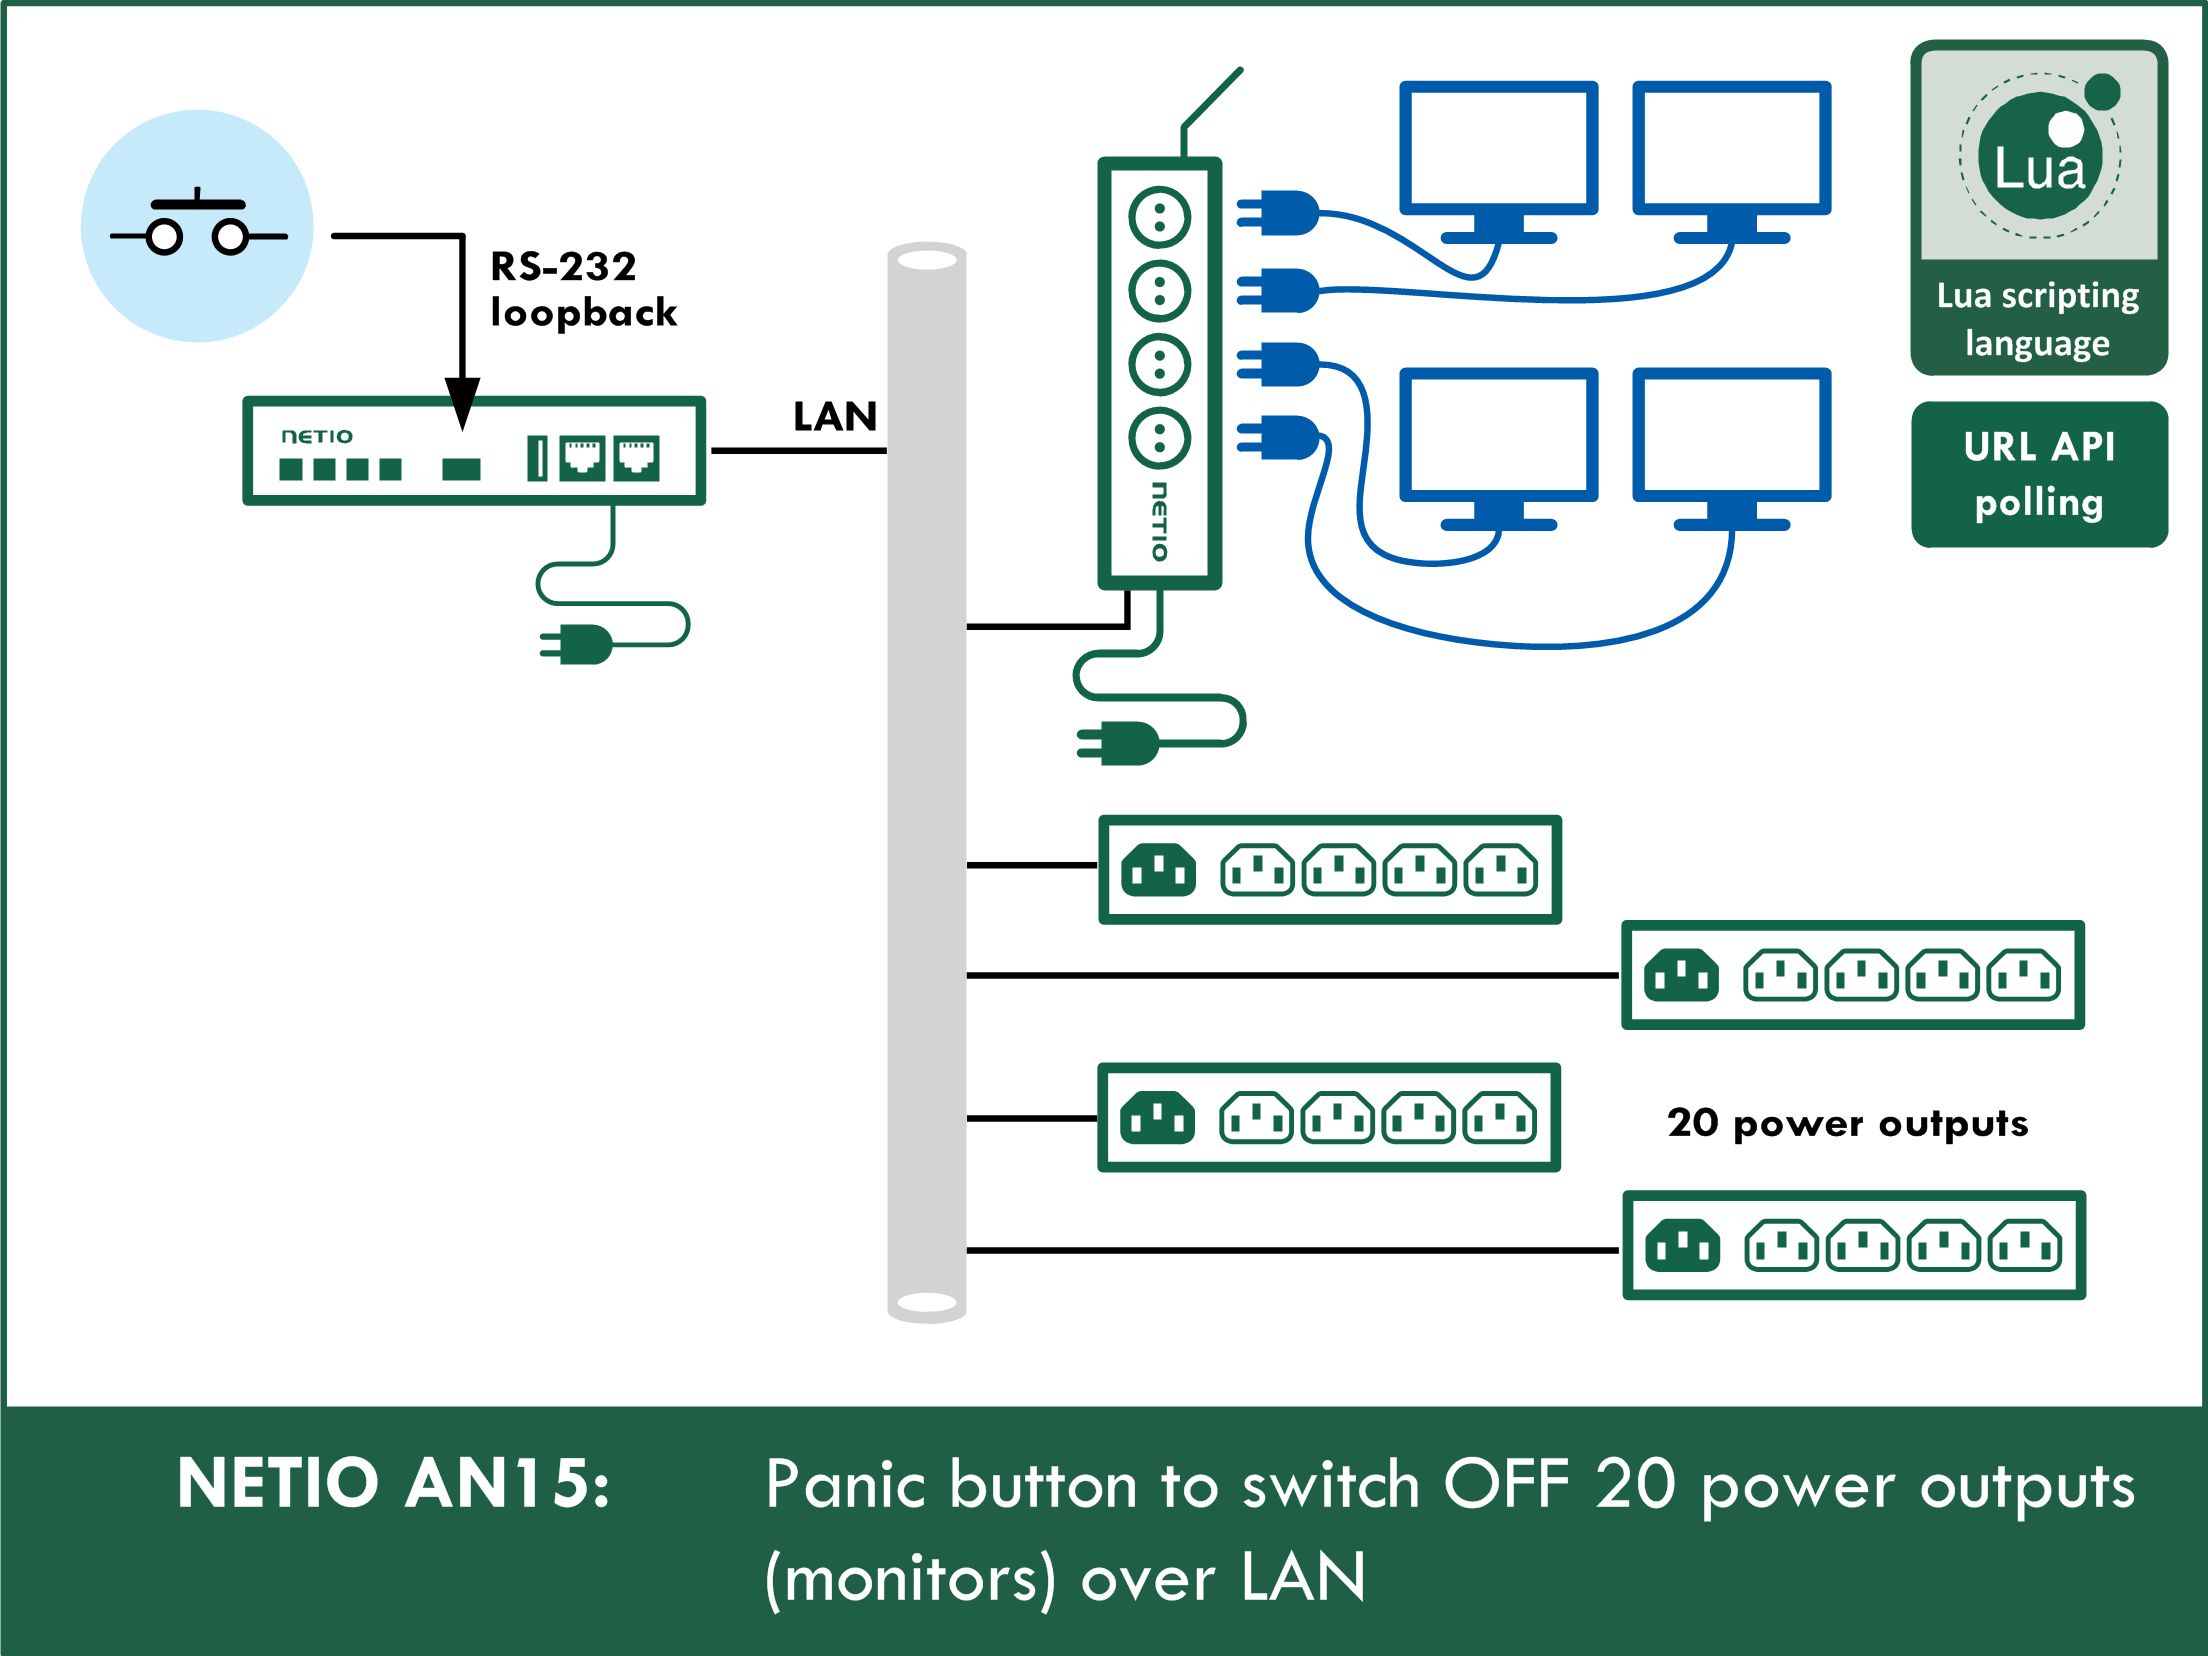 AN15 One switch to turn off 20 power outputs (monitors) over LAN